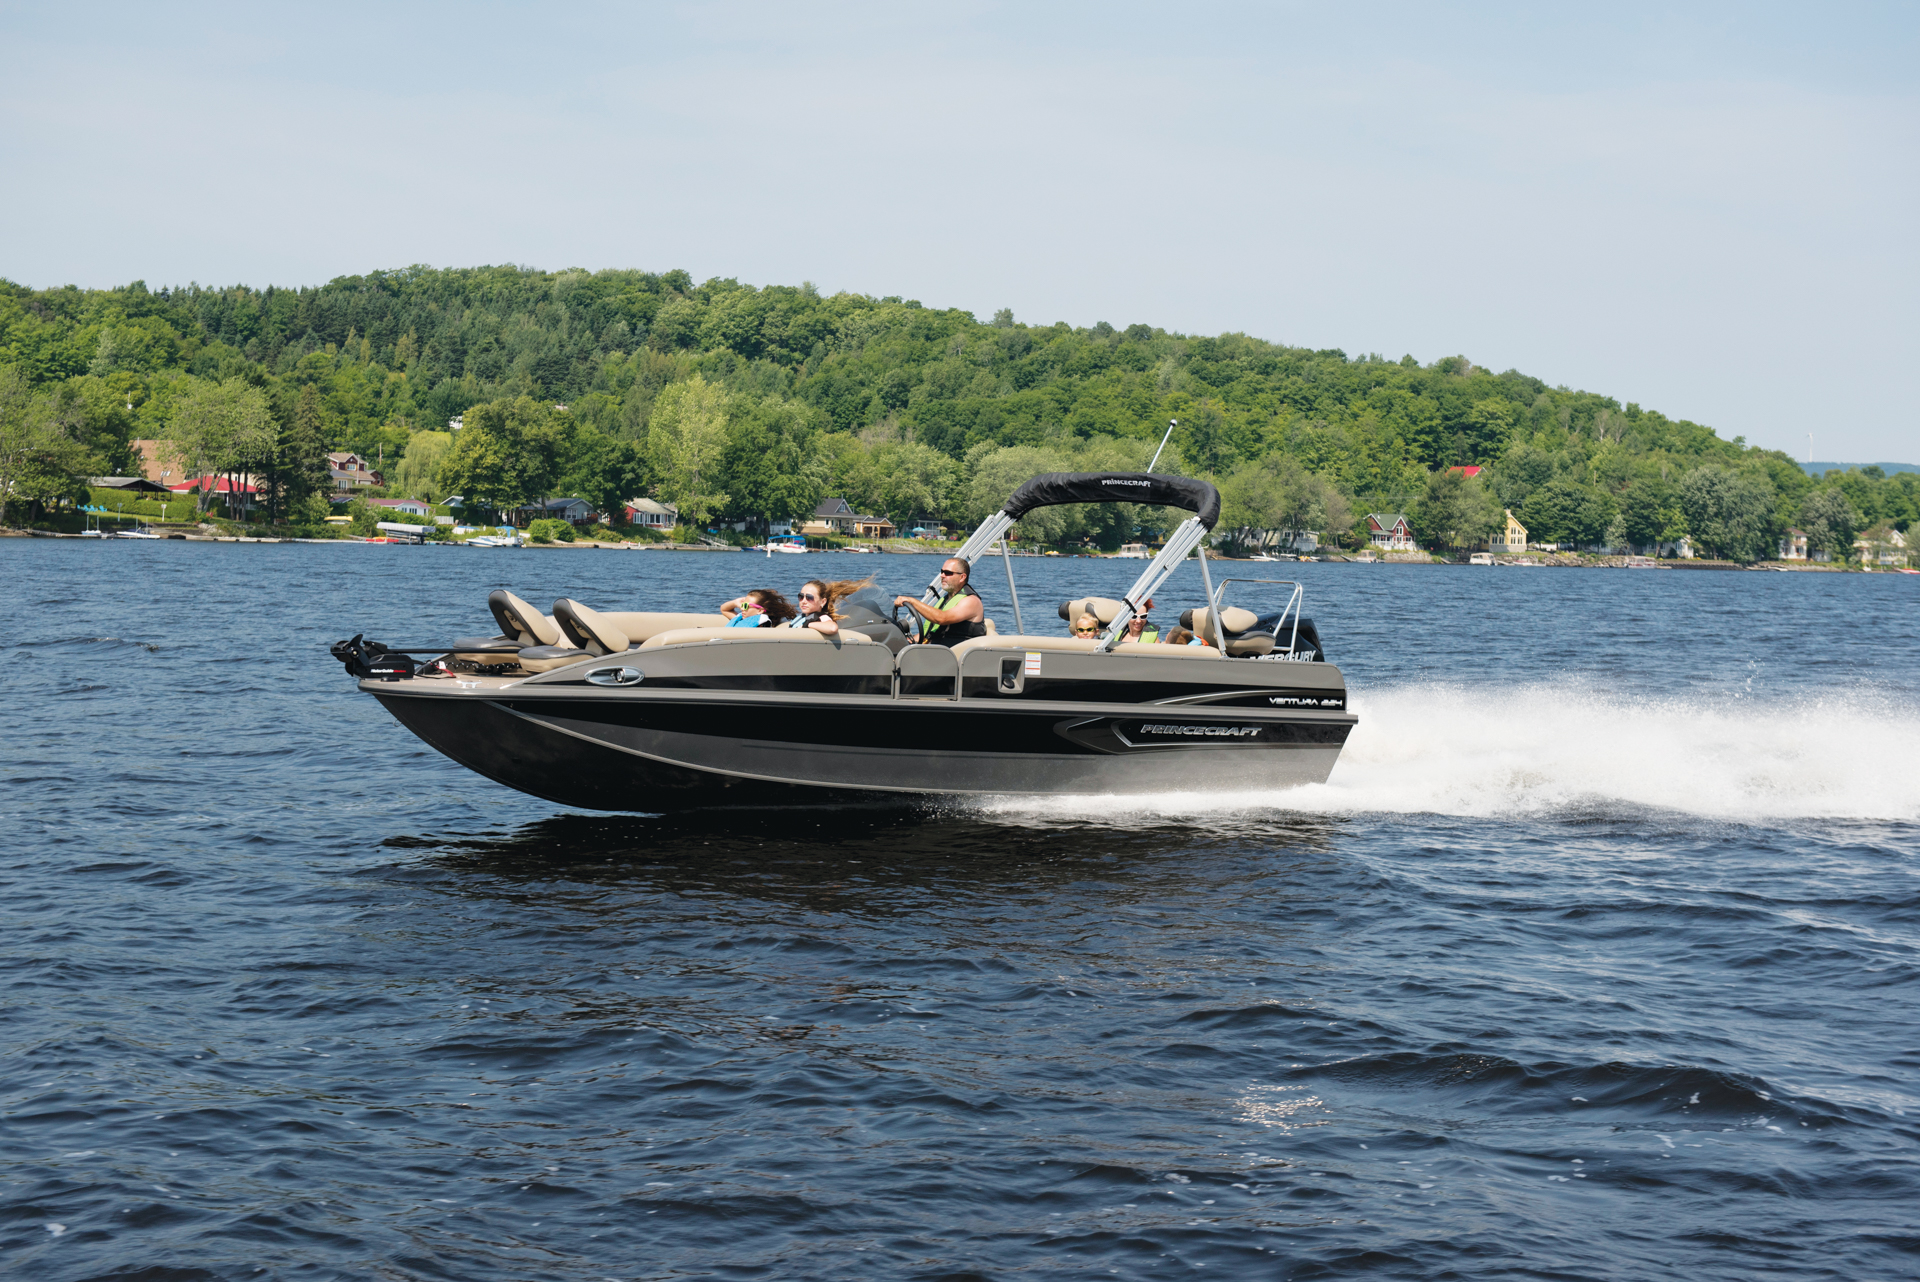 Boat Length Overall 22 2 6 8m Beam 8 1 5 M Draft 7 0 Dry Weight 250 Lbs 021 Kgs Capacity People 12 Max